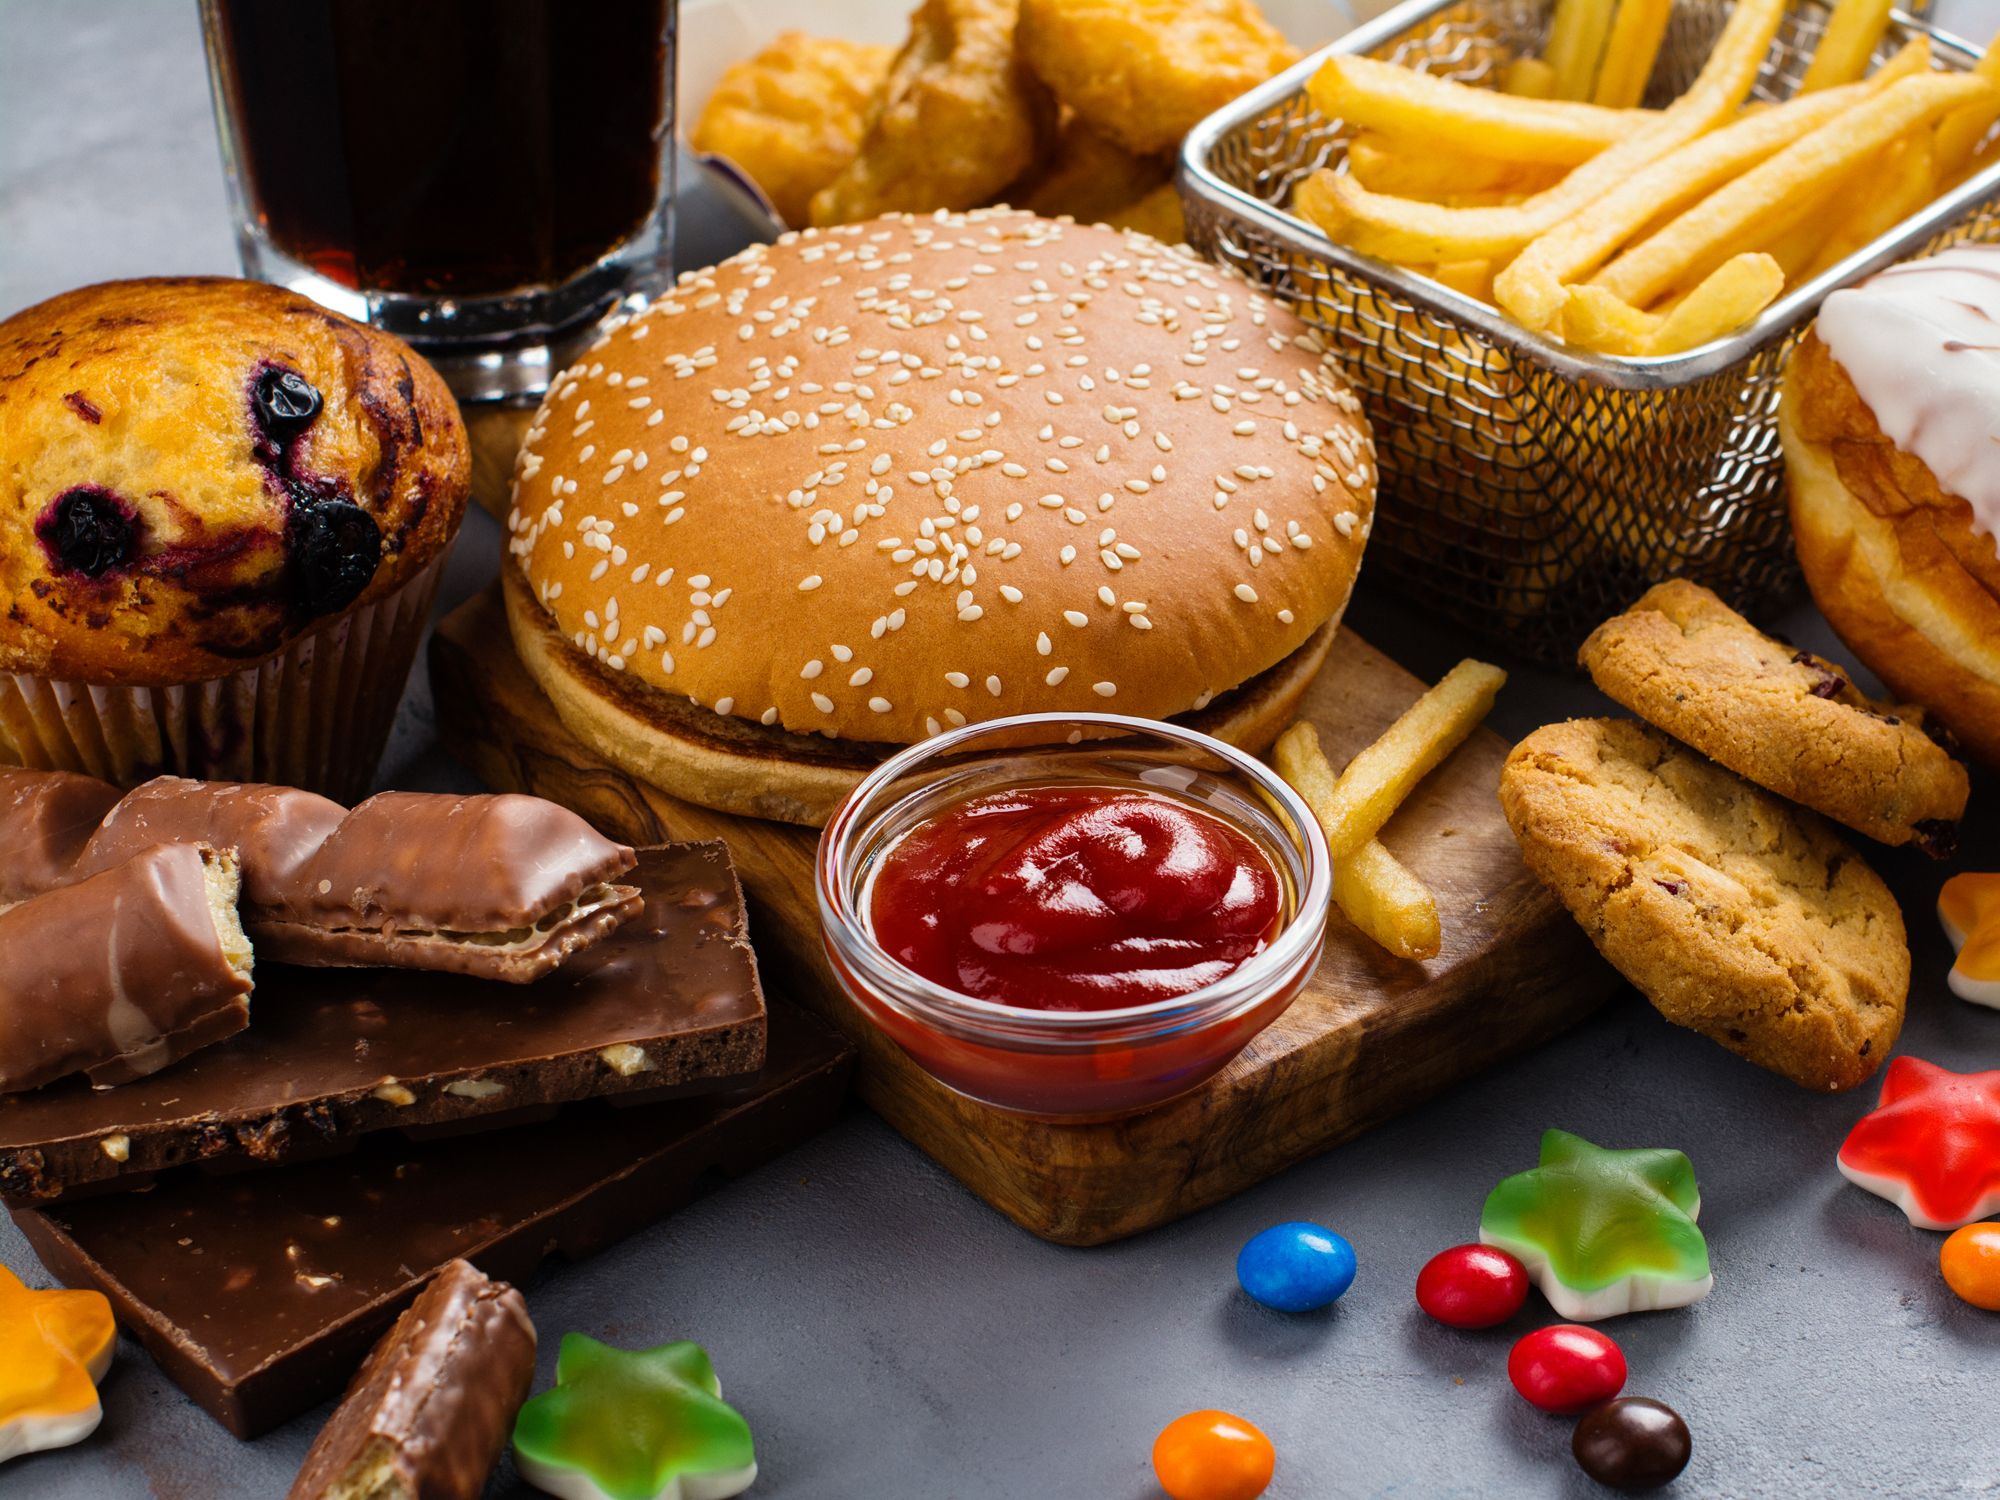 34 Chronic Diseases Fueled By Junk Food